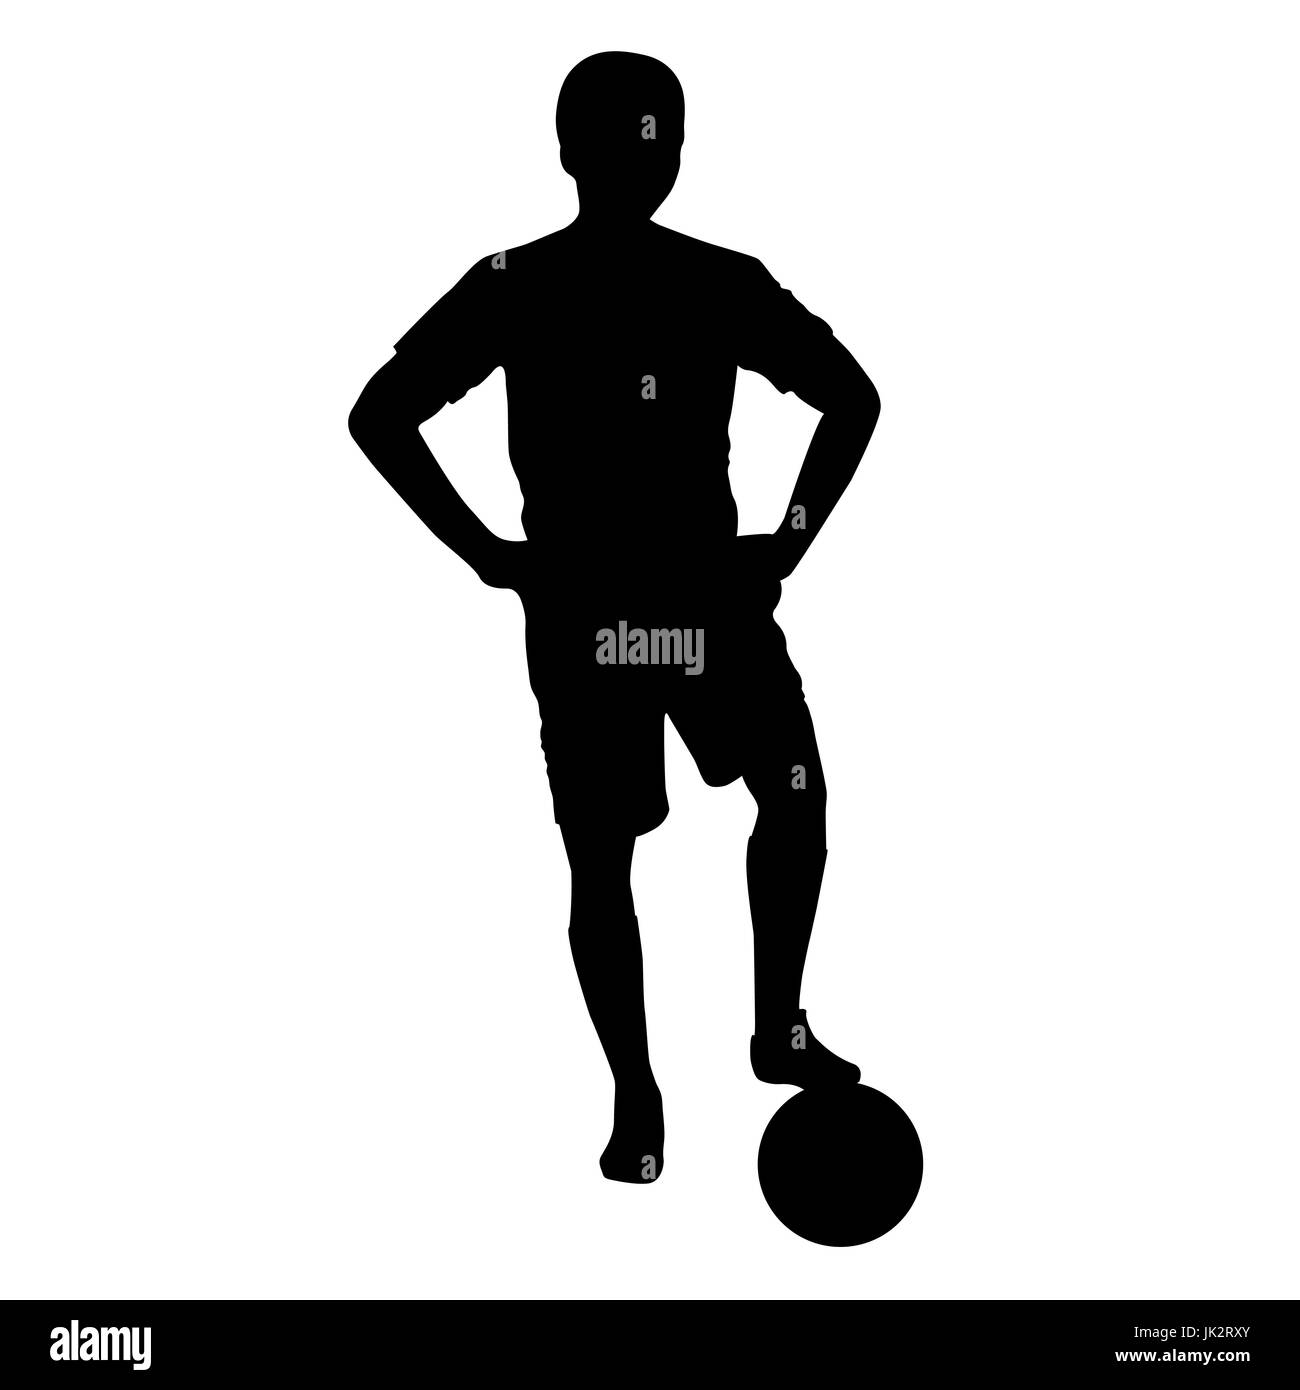 Footballer silhouette. Black football player outline with a ball, isolated on white background. Vector illustration - Stock Vector